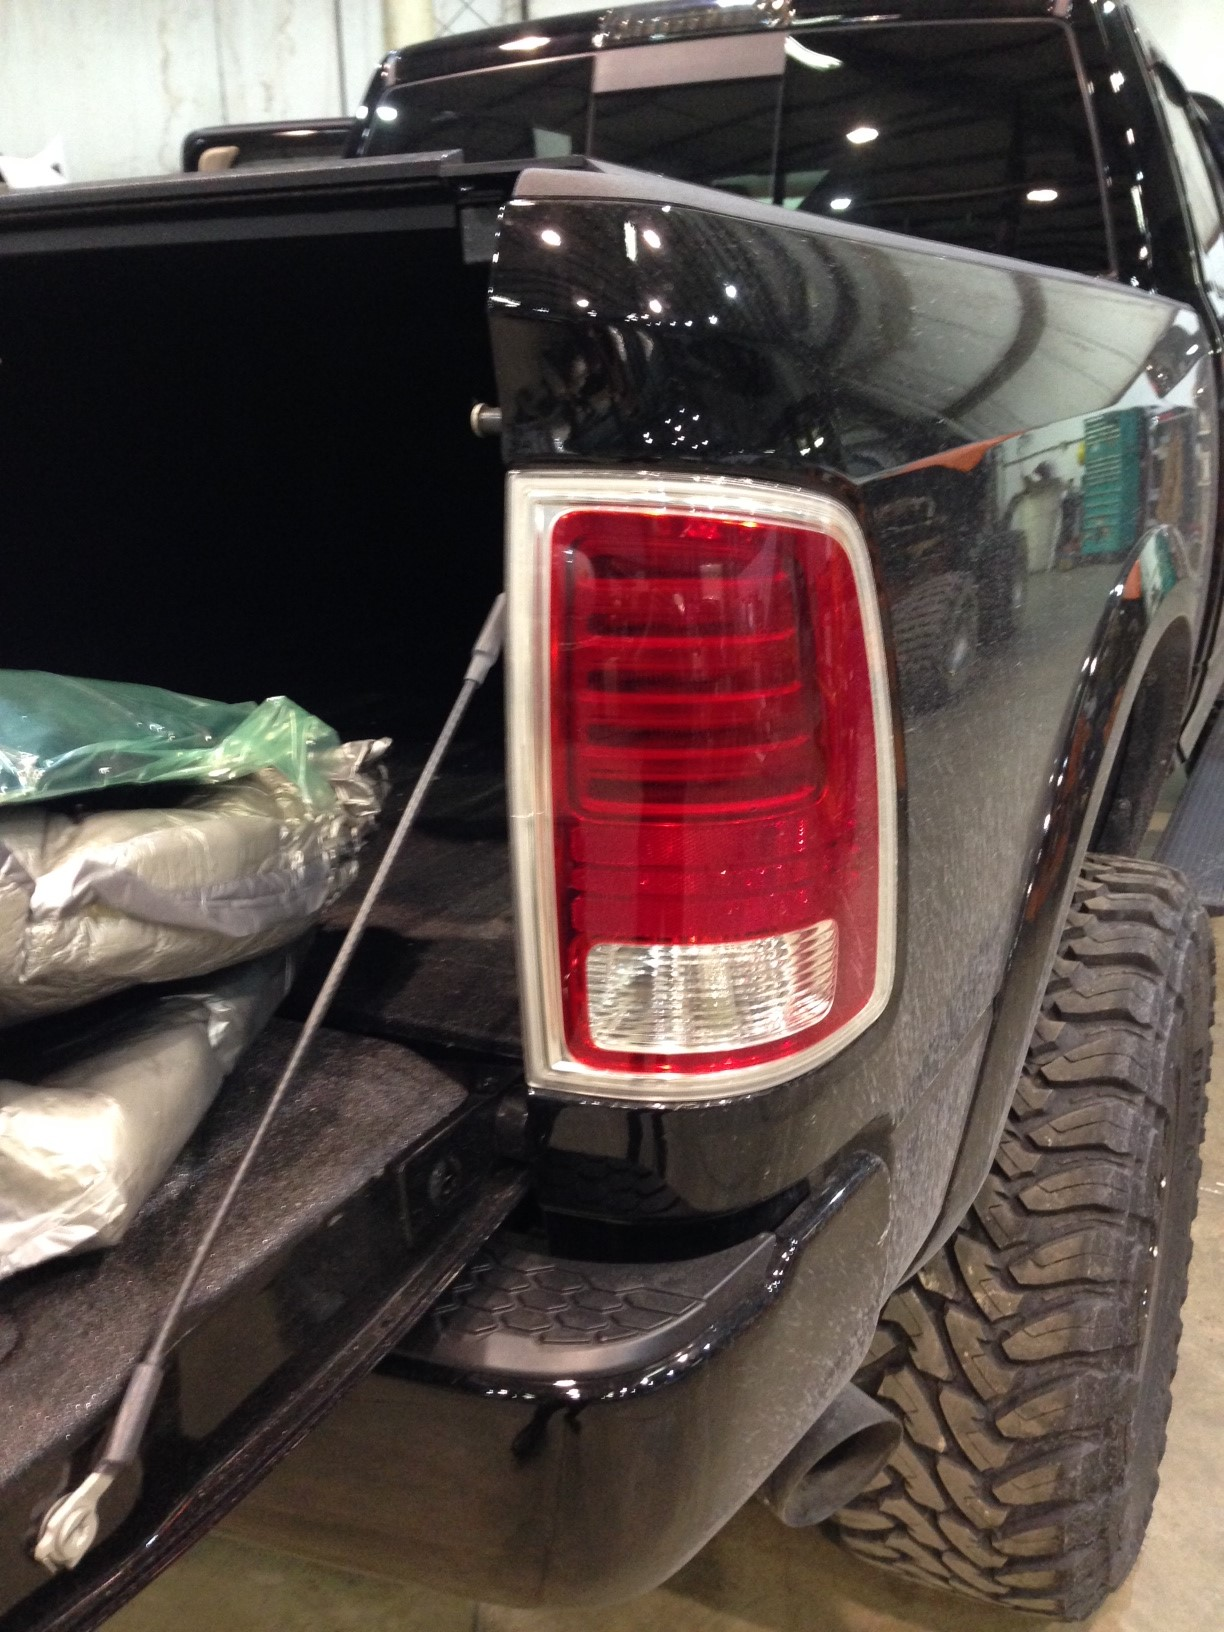 Diesel Exhaust Tip >> Recon Tails for Factory LEDs - Page 3 - Dodge Cummins Diesel Forum